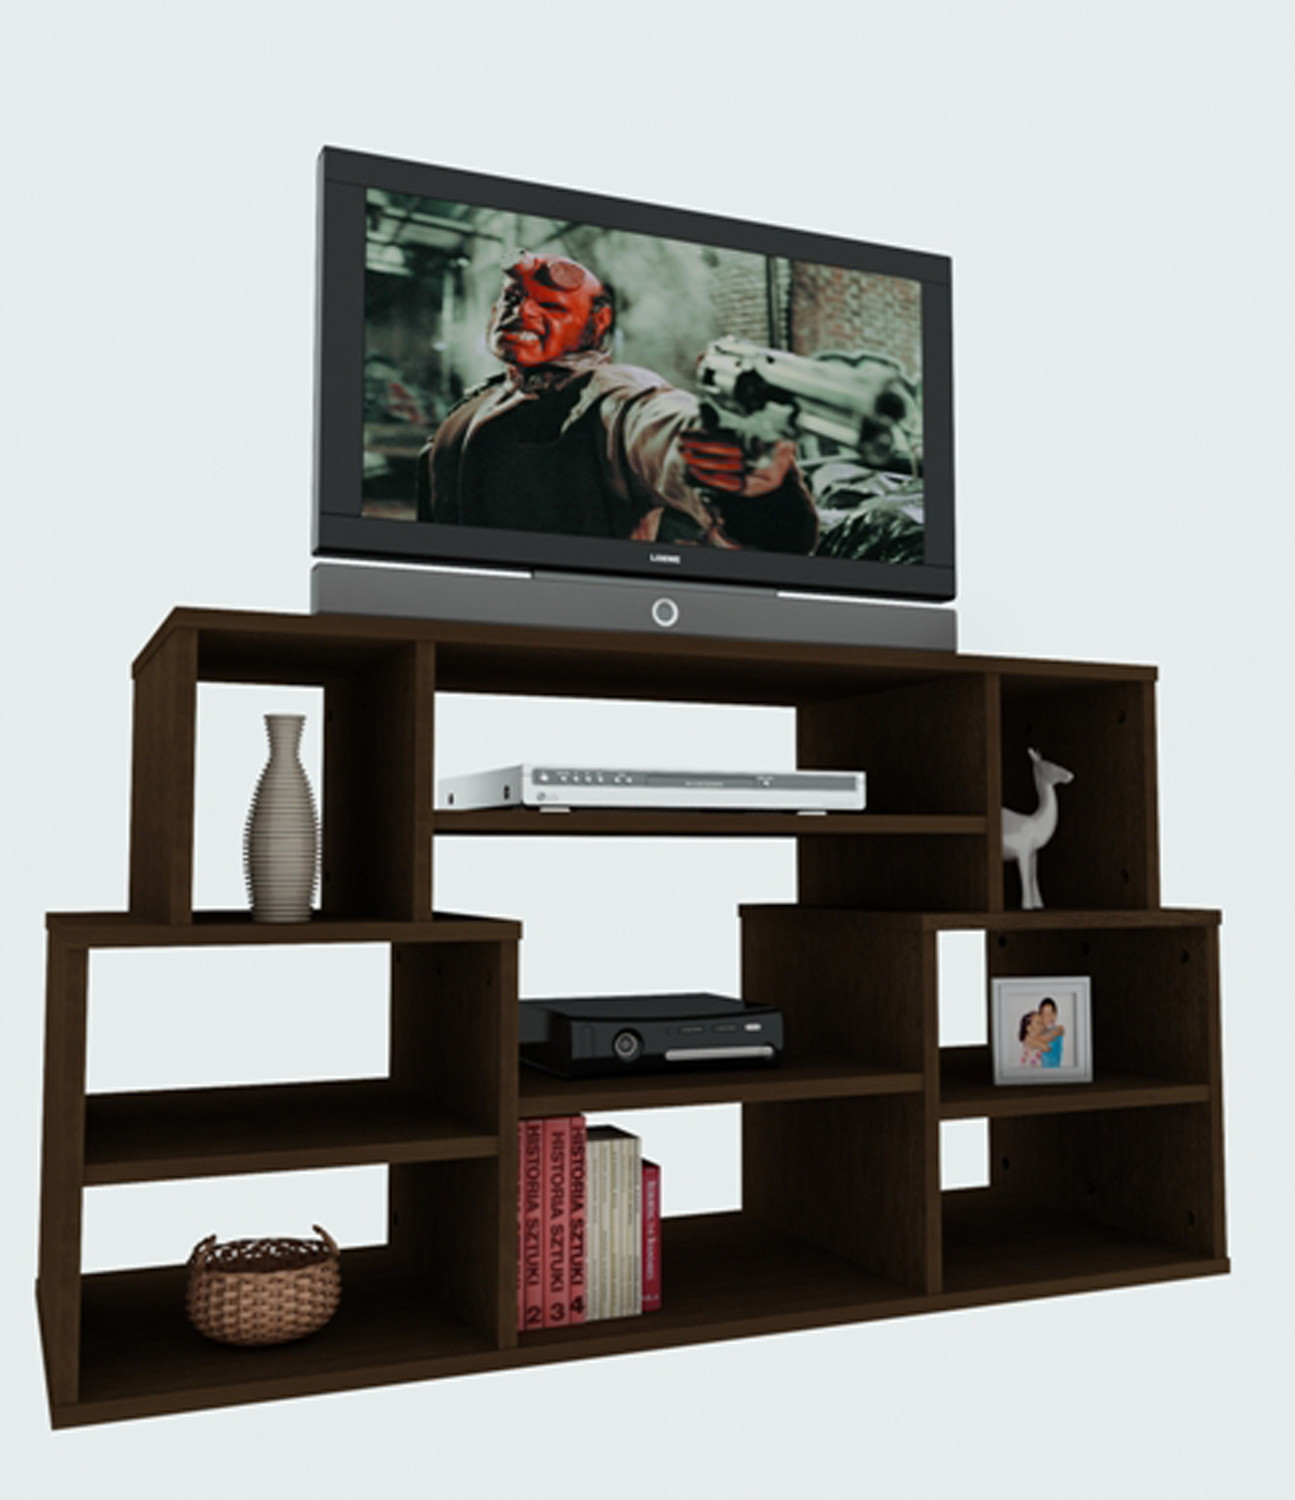 Muebles Para Tv Modernos Magnífico Tv 432 Sistemasrta Free Download Borrow and Of Muebles Para Tv Modernos Magnífico Muebles Tv Modernos Nature Lux